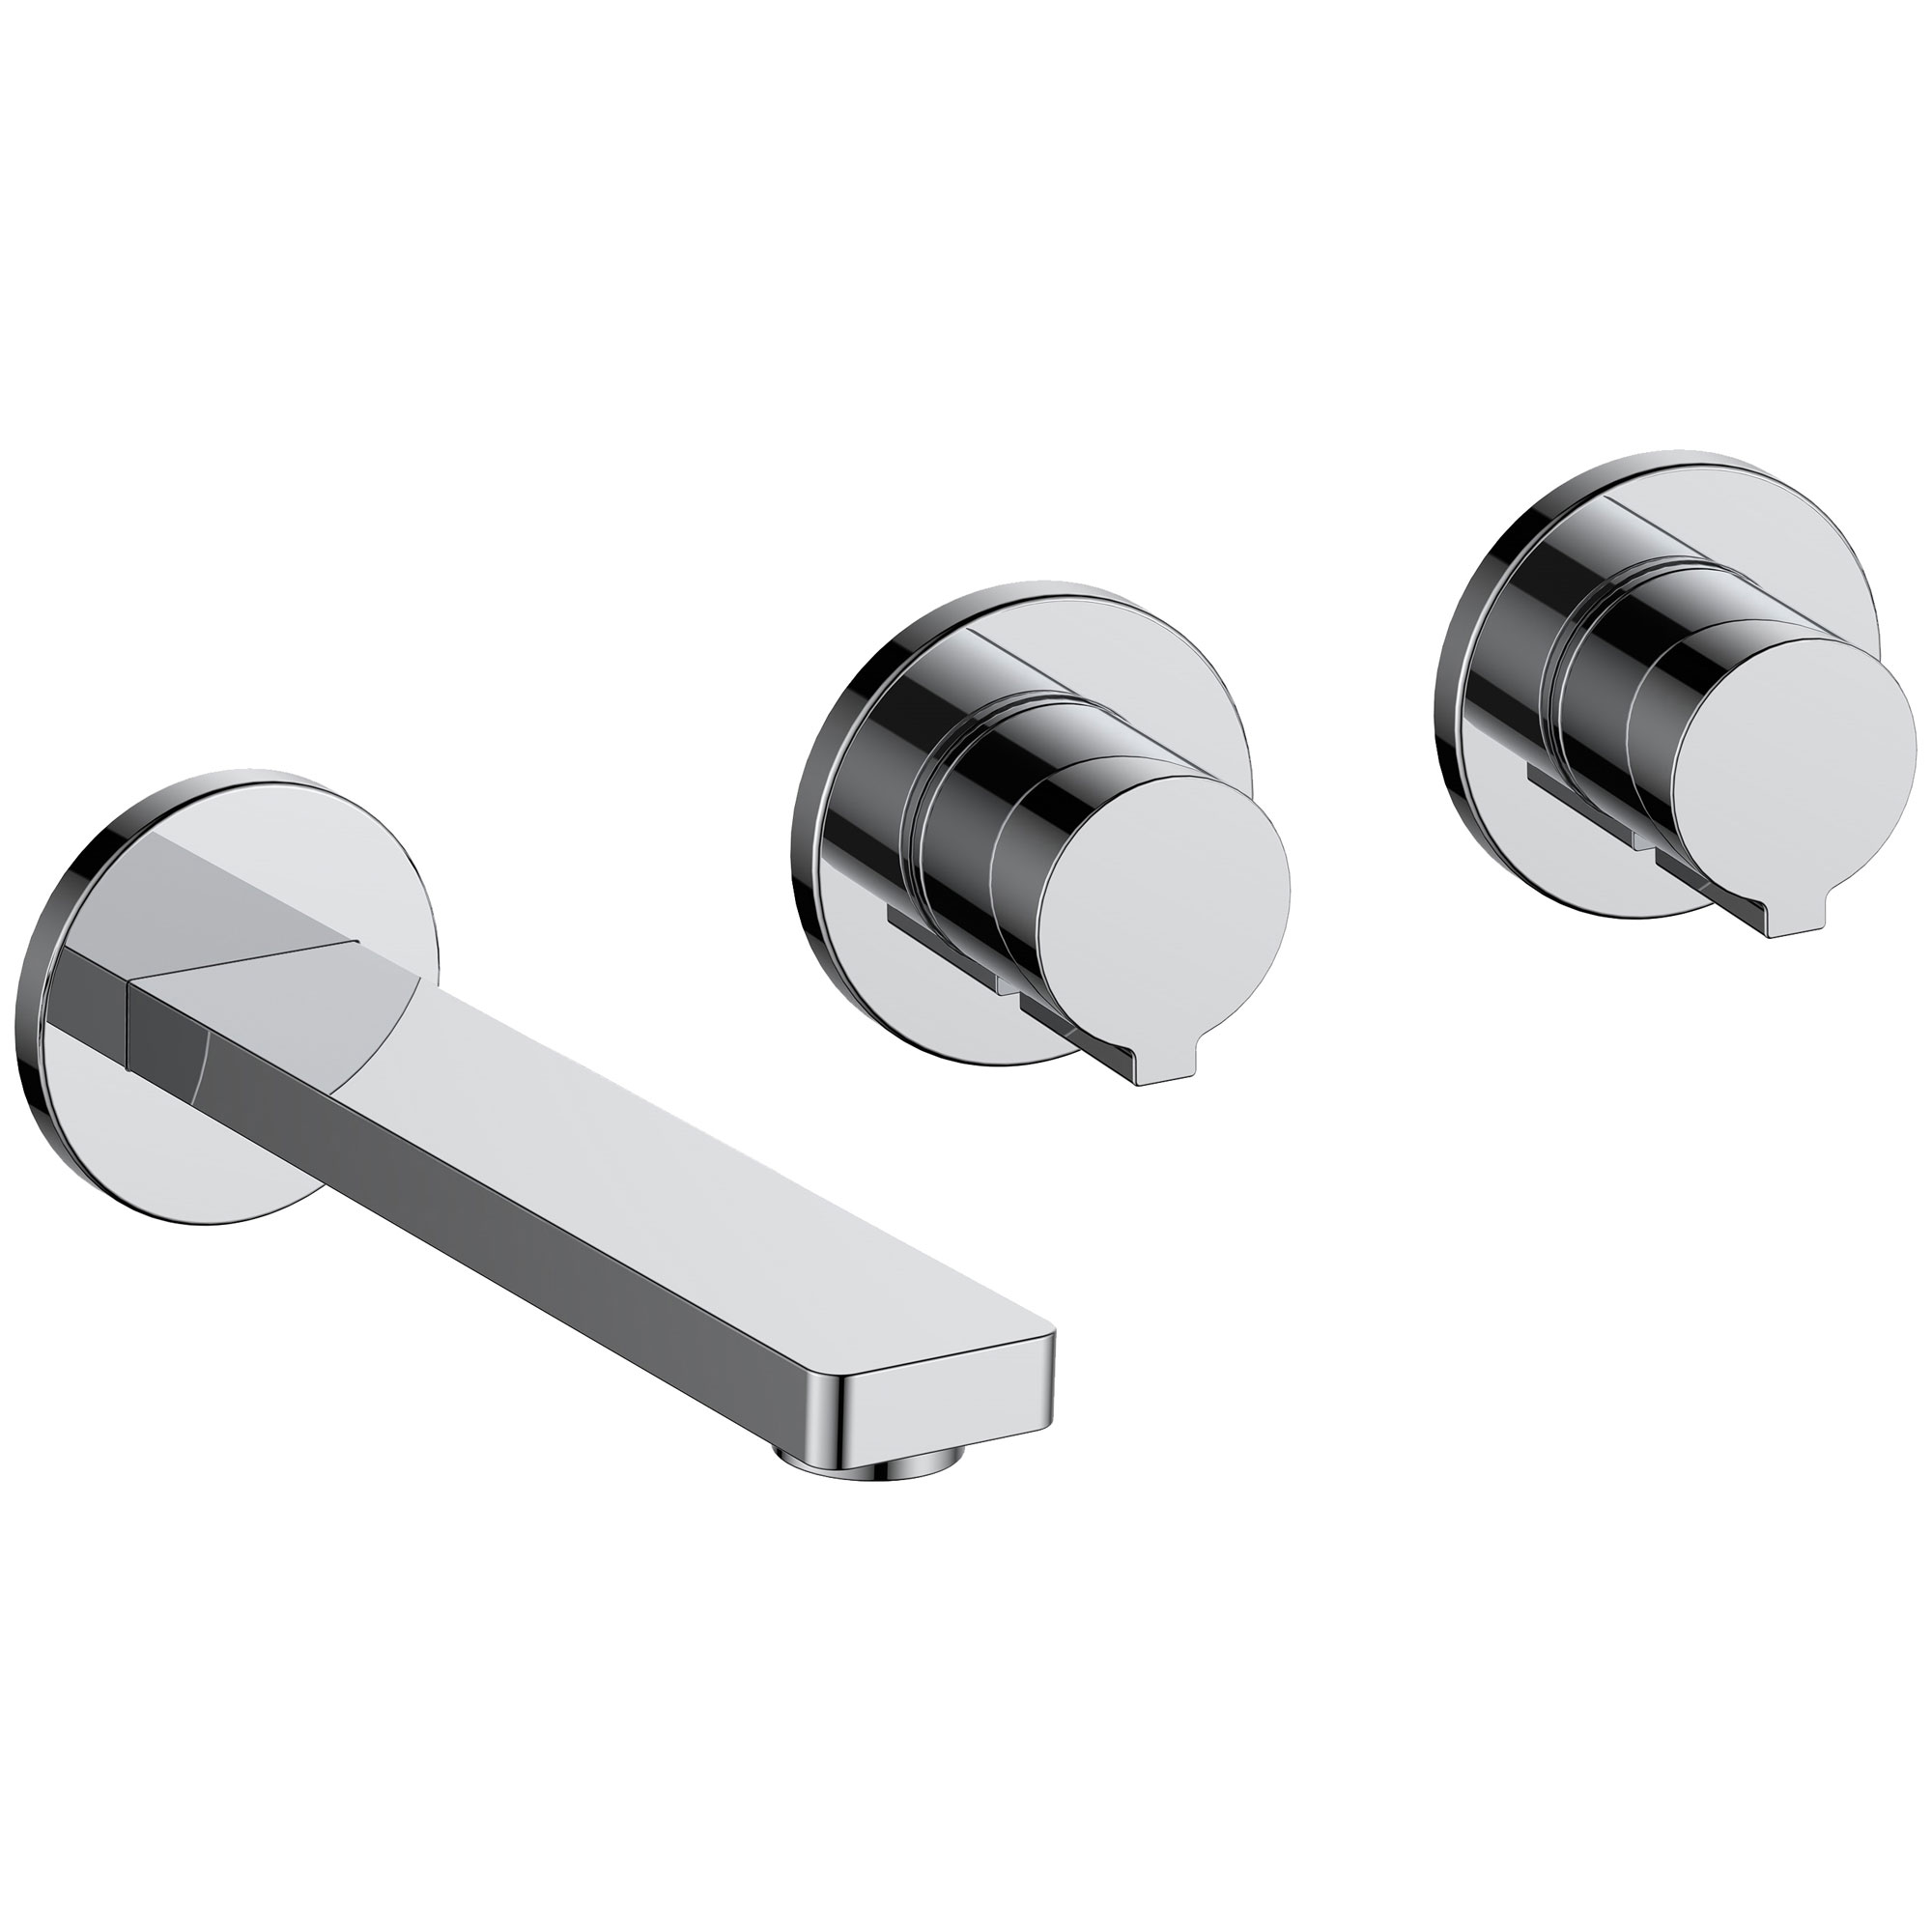 JTP Hugo 3-Hole Wall Mounted Basin Mixer Tap - Chrome